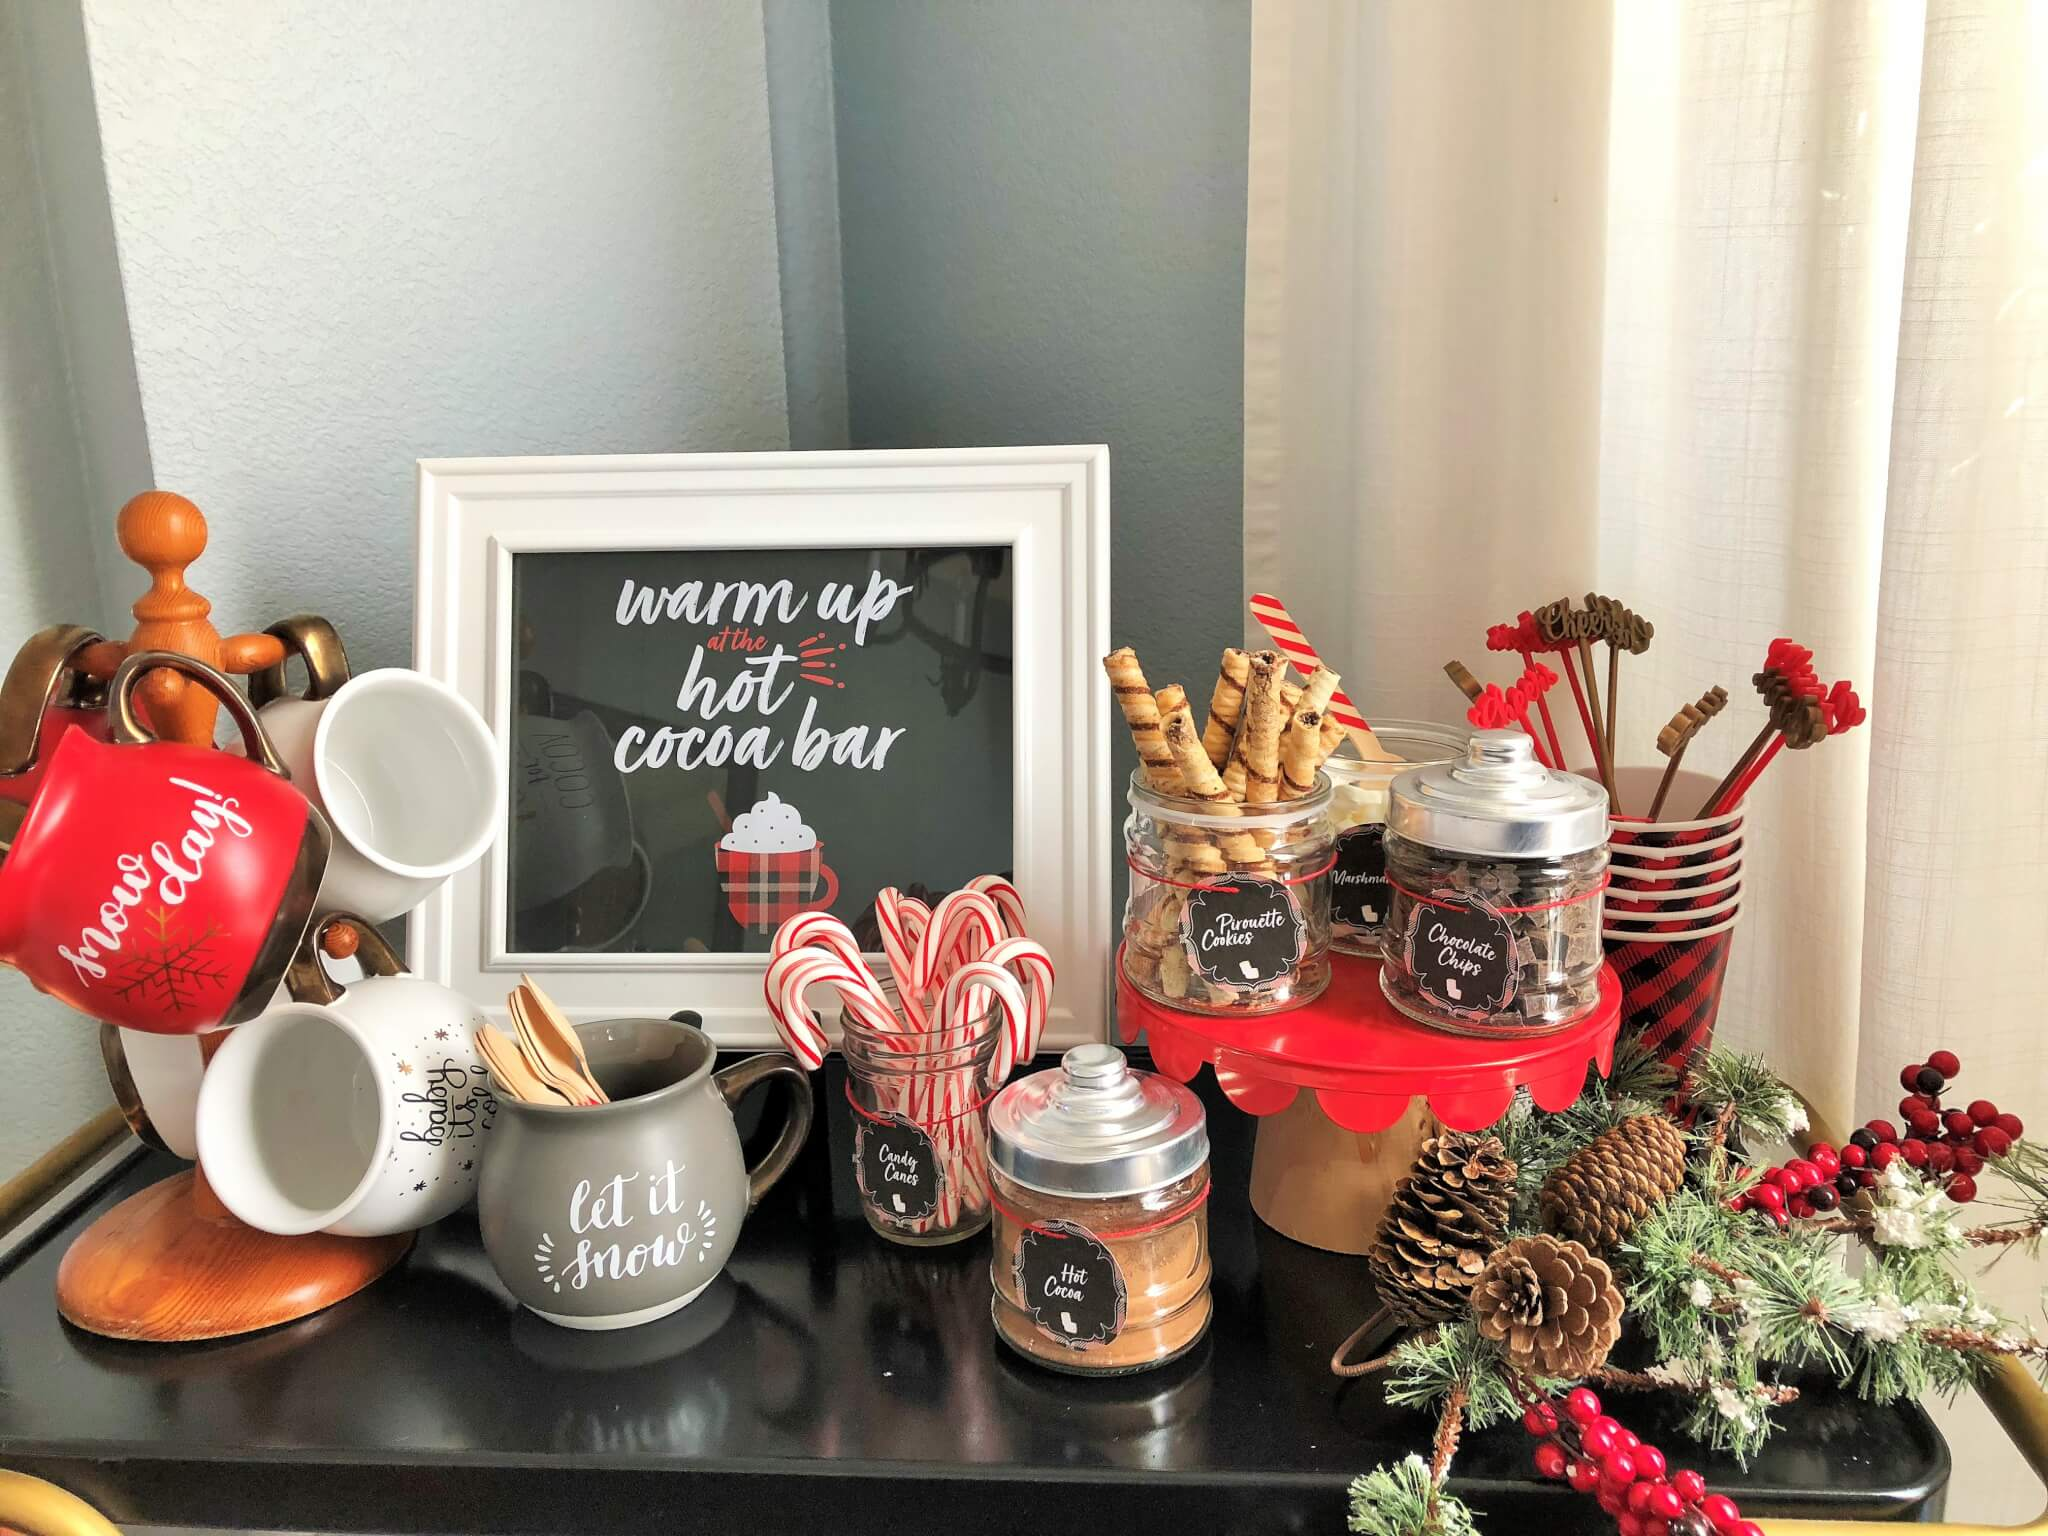 Hot cocoa bar with free printables and toppings